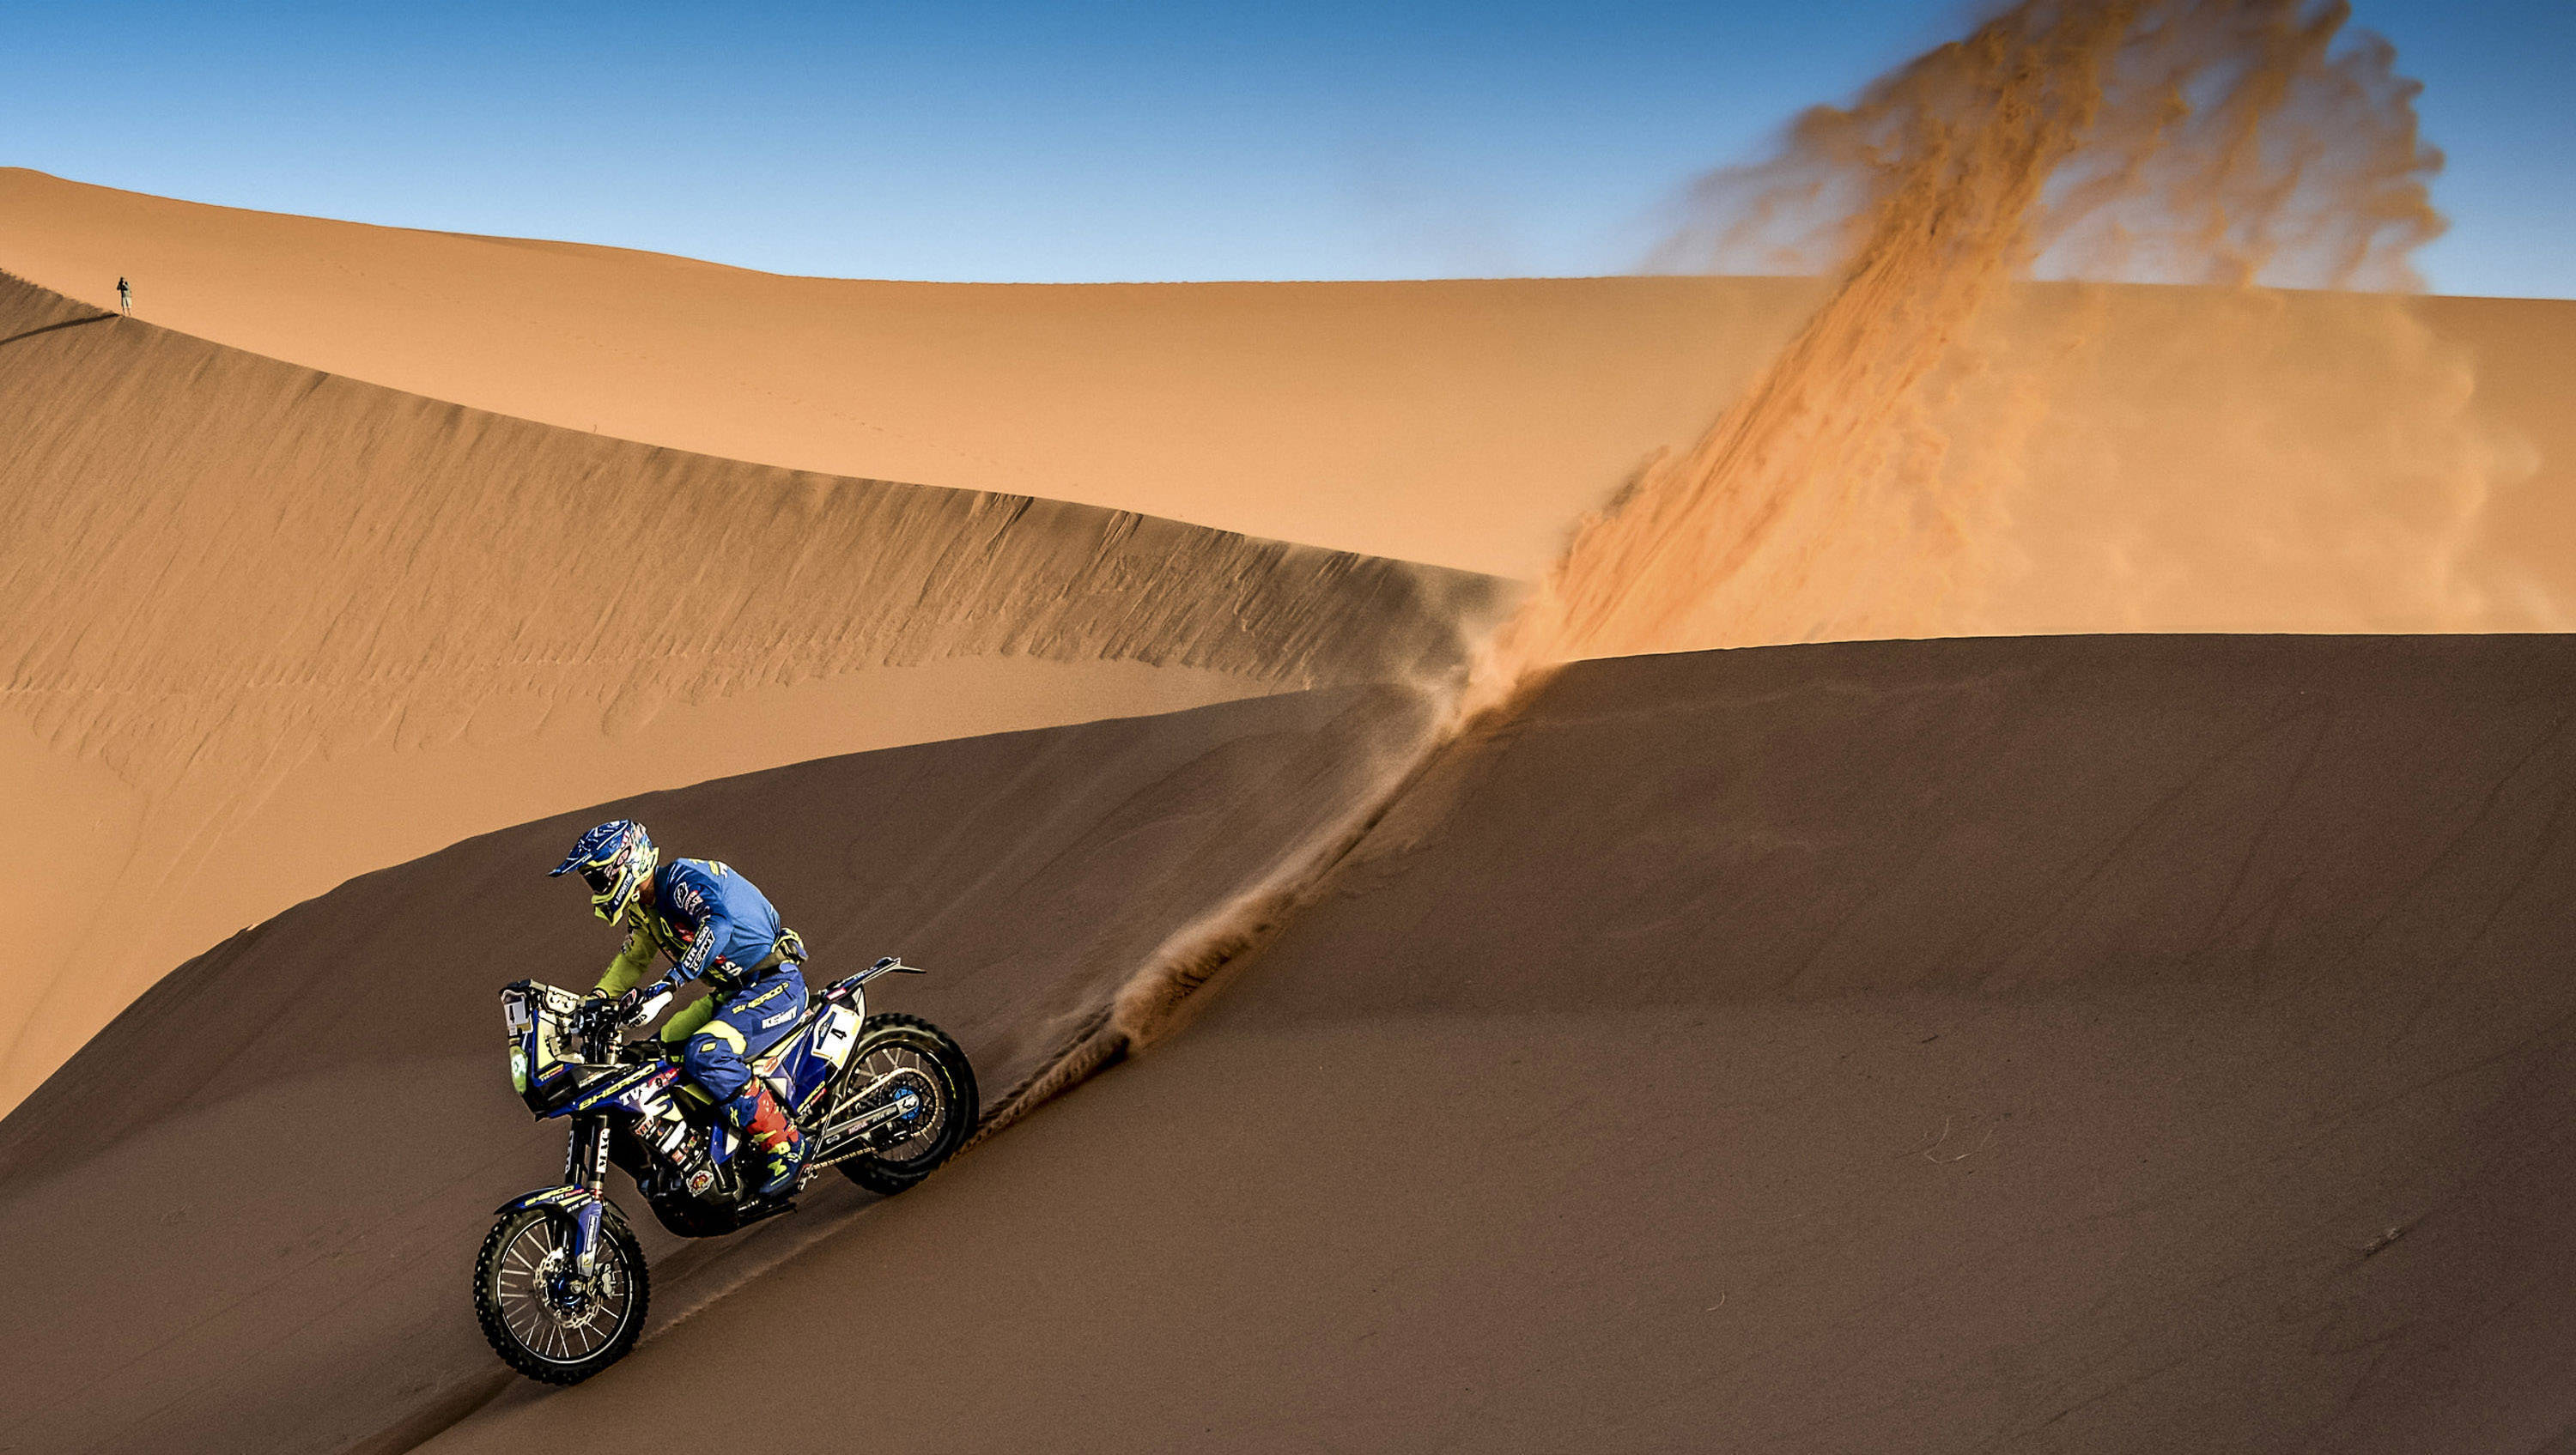 2018 Merzouga Rally: Sherco TVS rider Pedrero ranked eighth overall after Stage 2